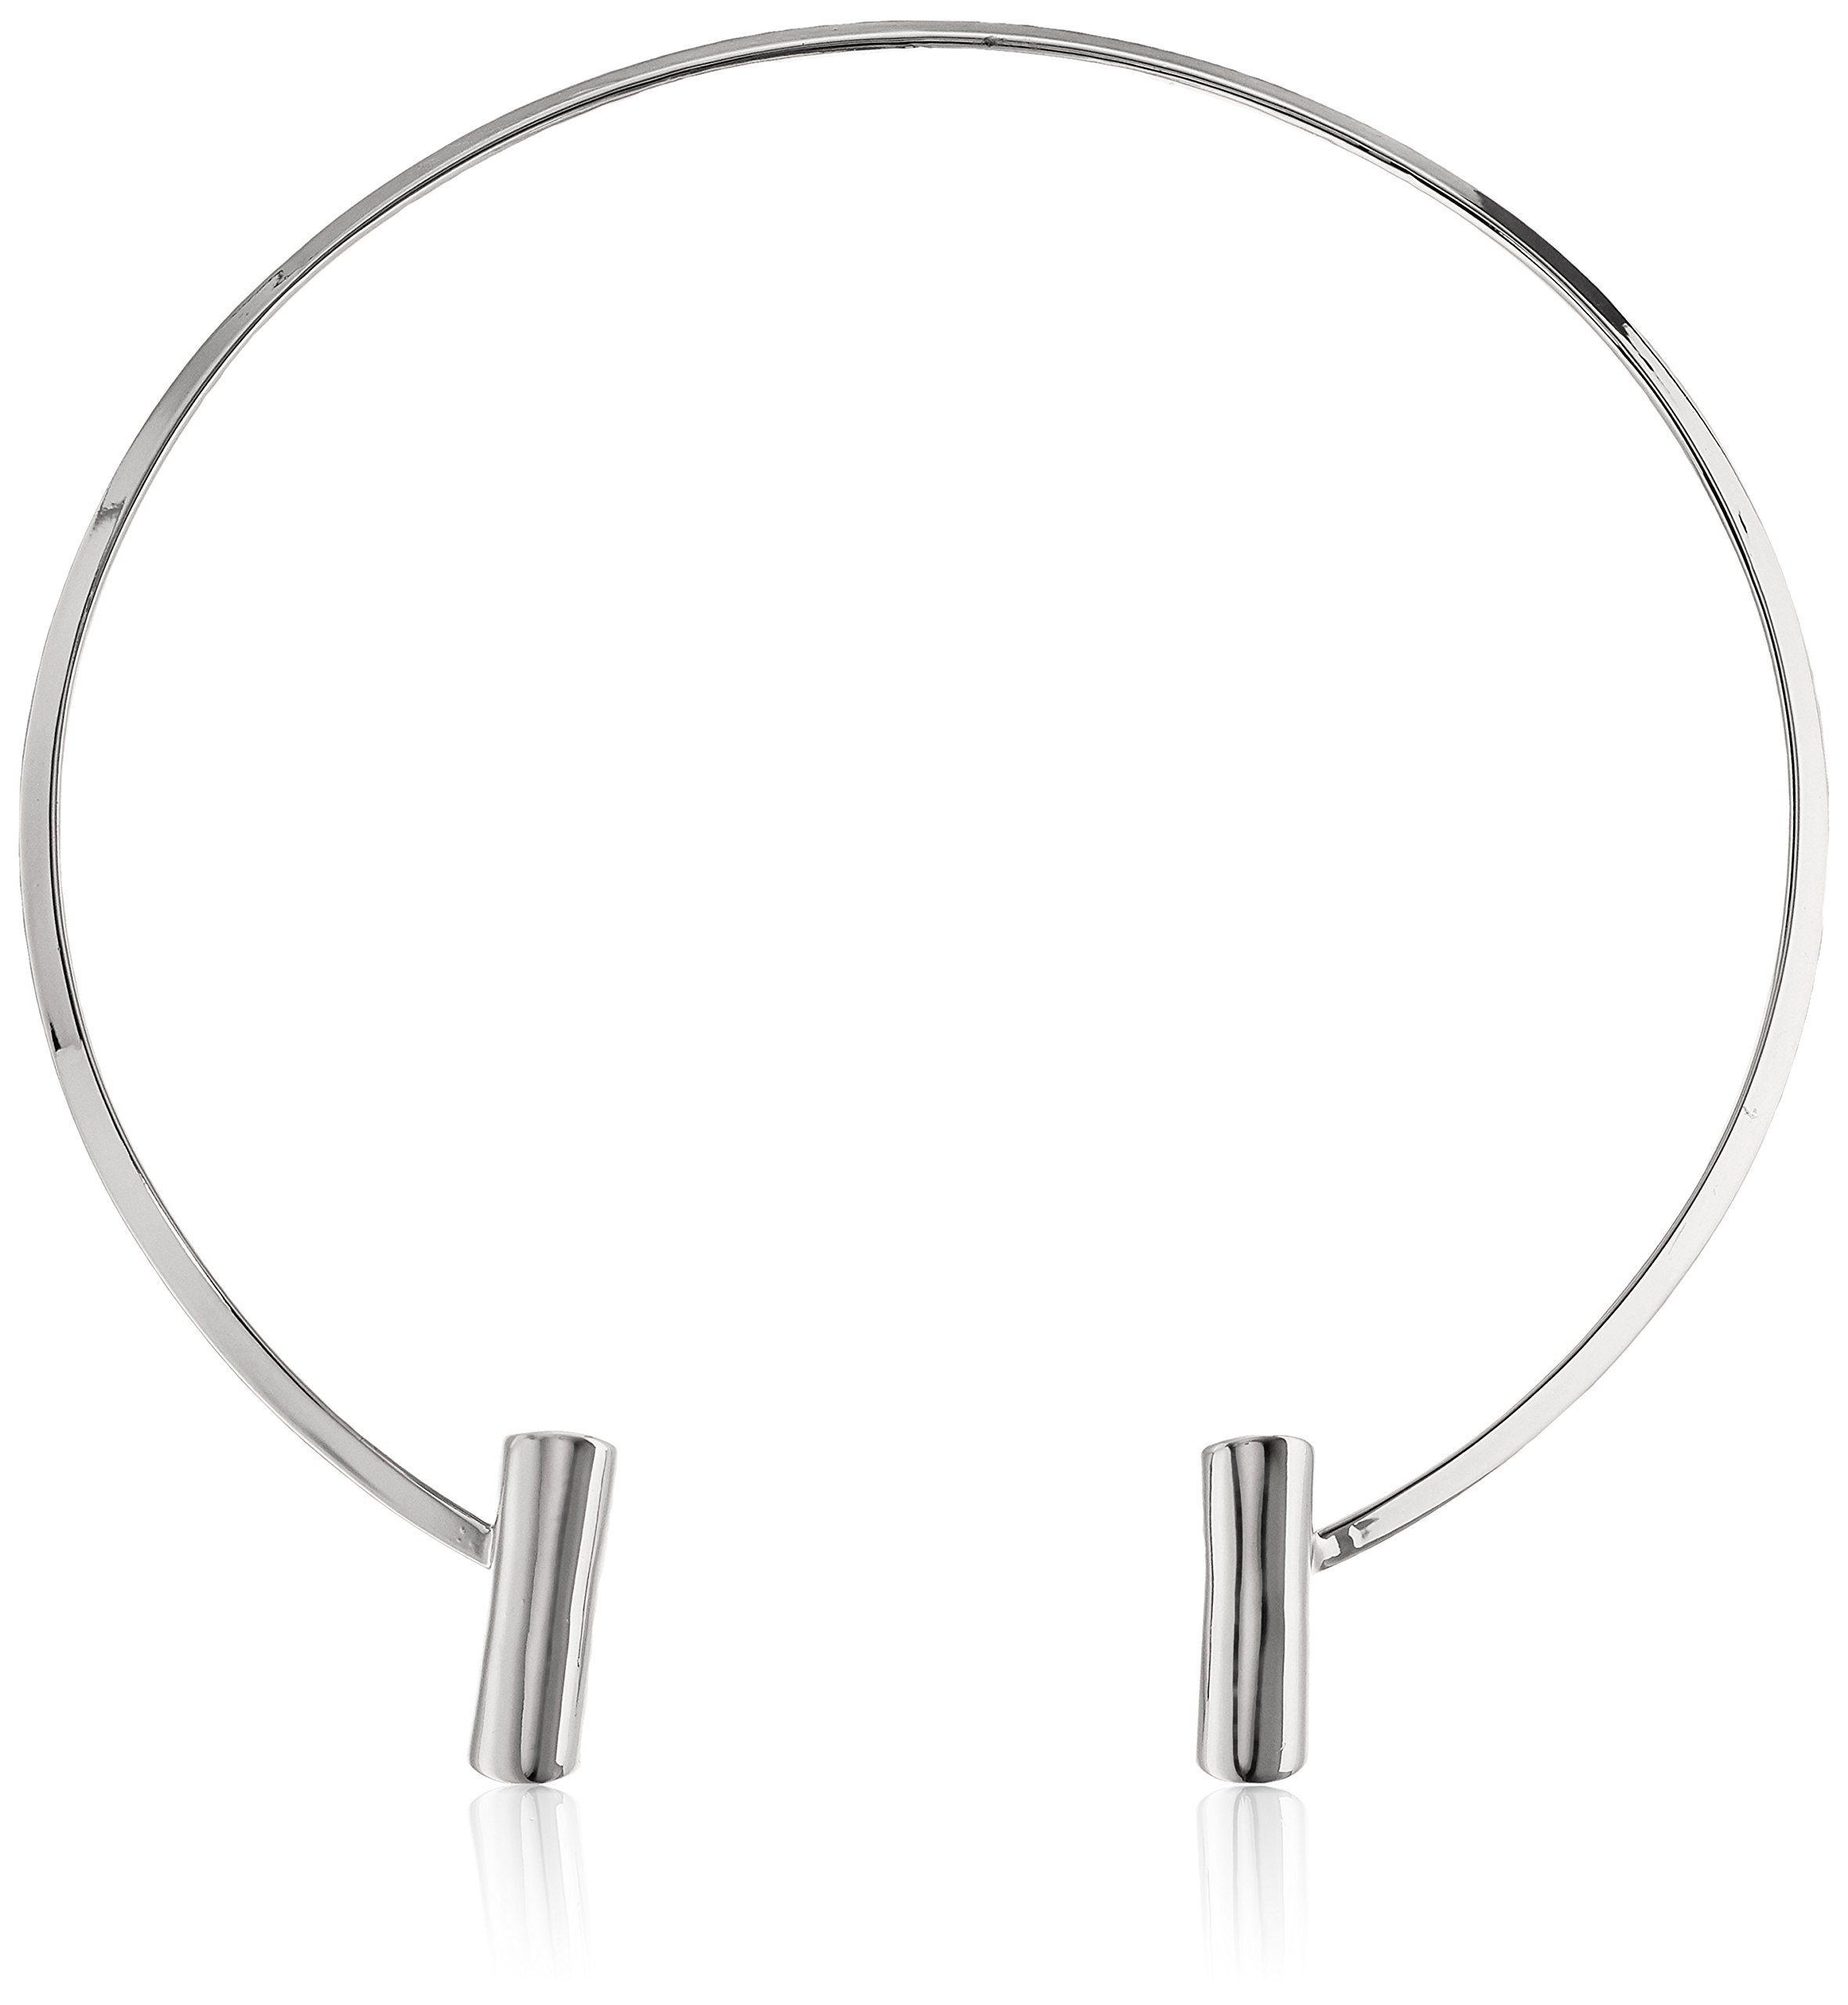 Bar Collar Choker Necklace, Silver, One Size